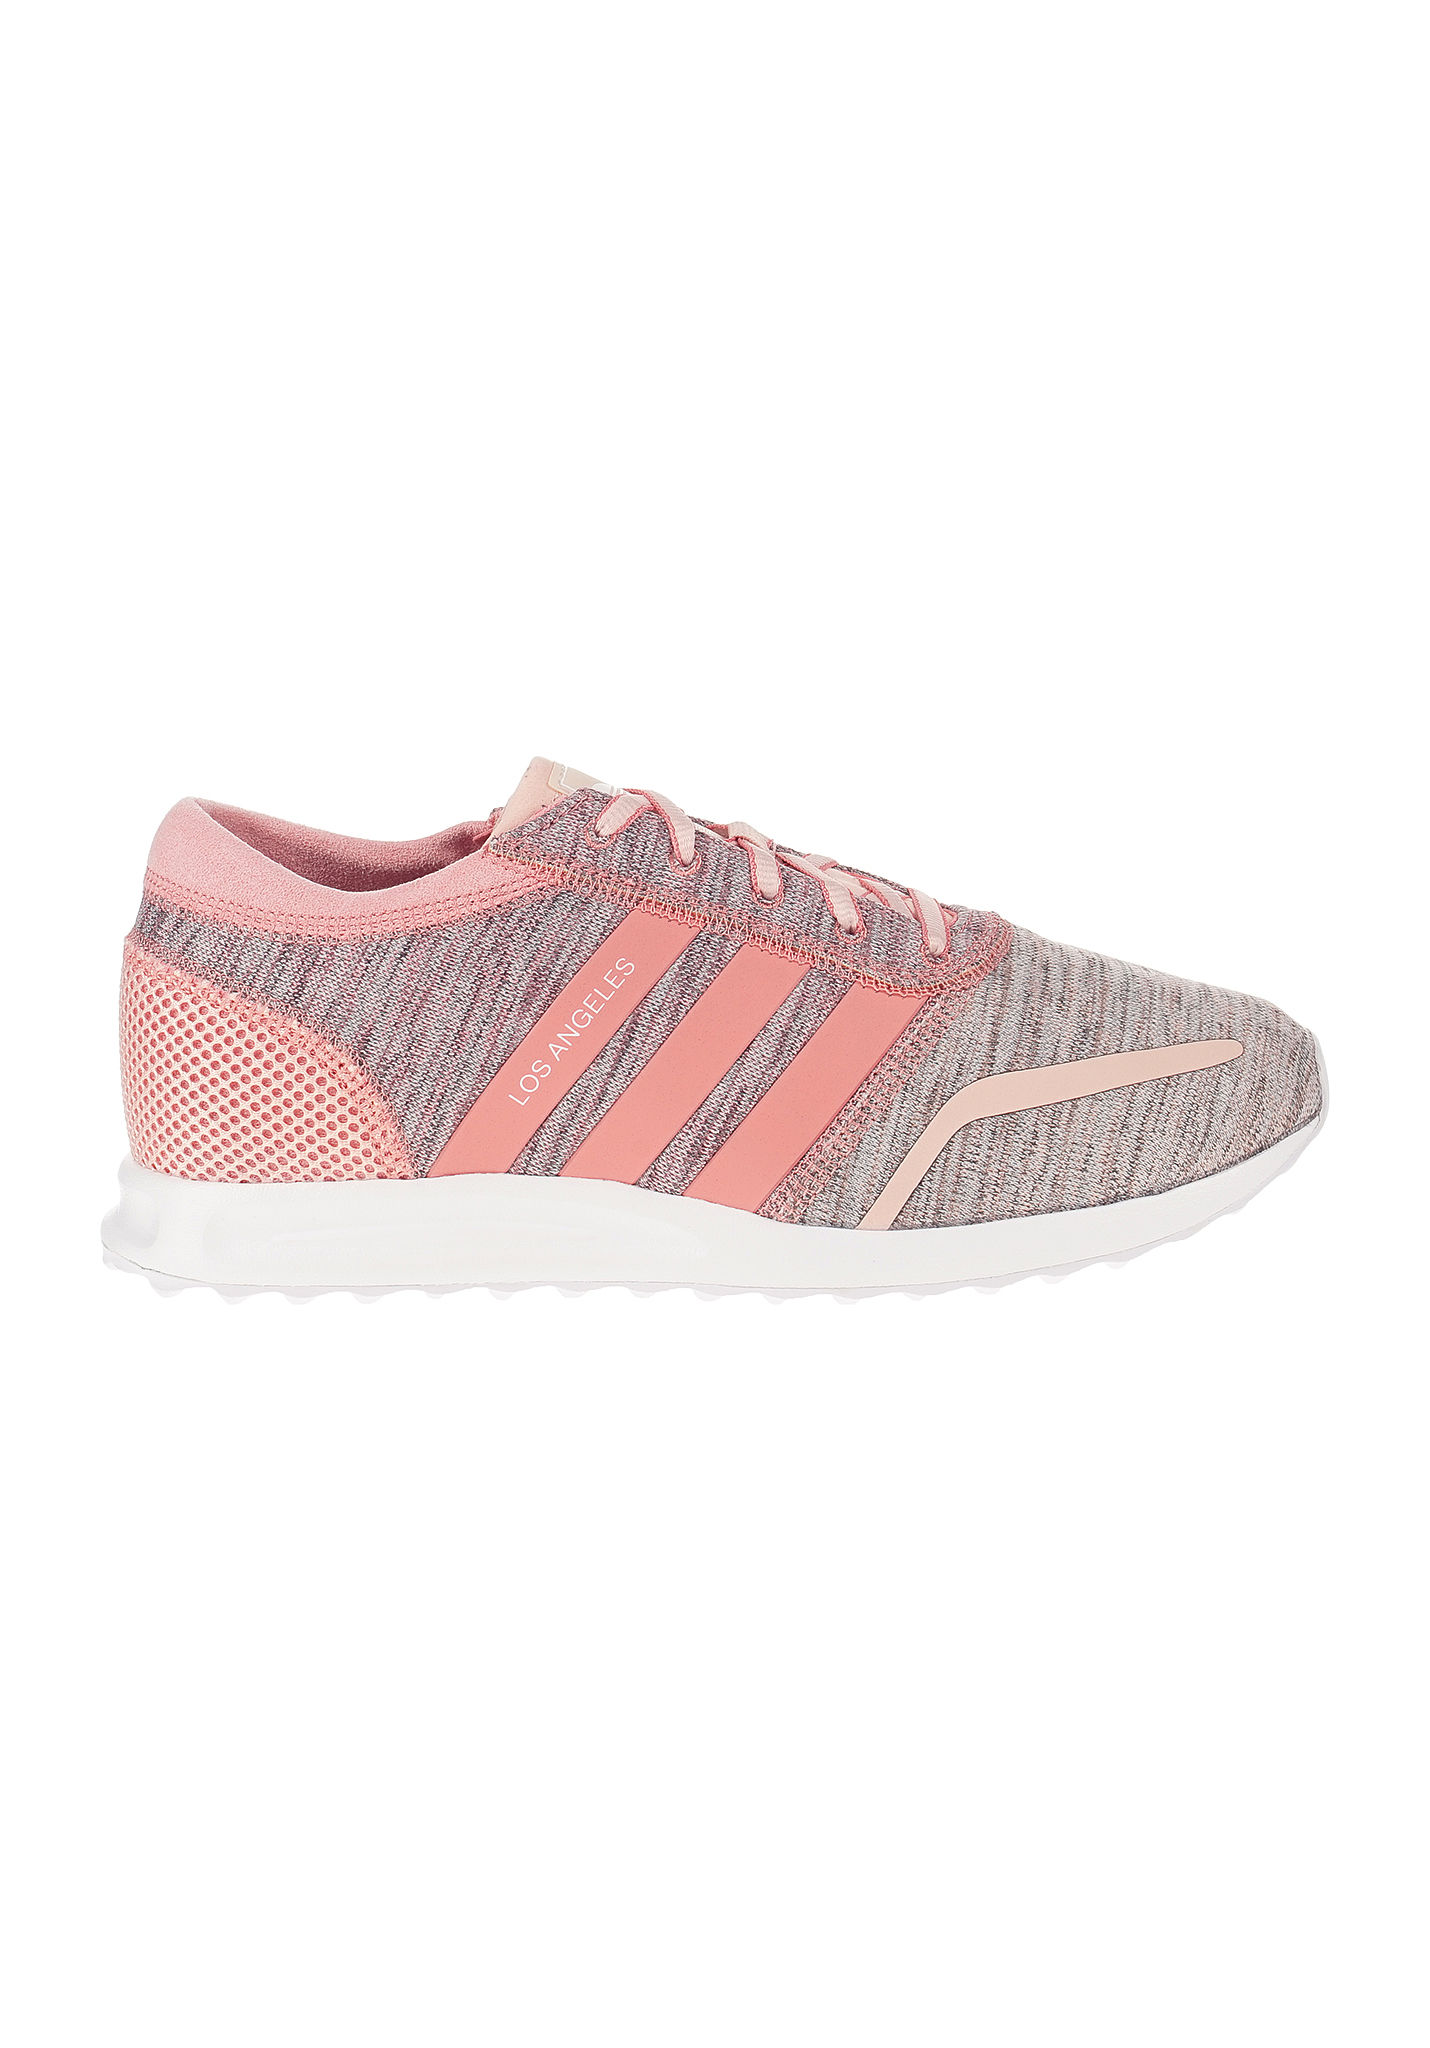 buc Adidas Los Schuhe it Rosa Angeles QCxoBtsrdh